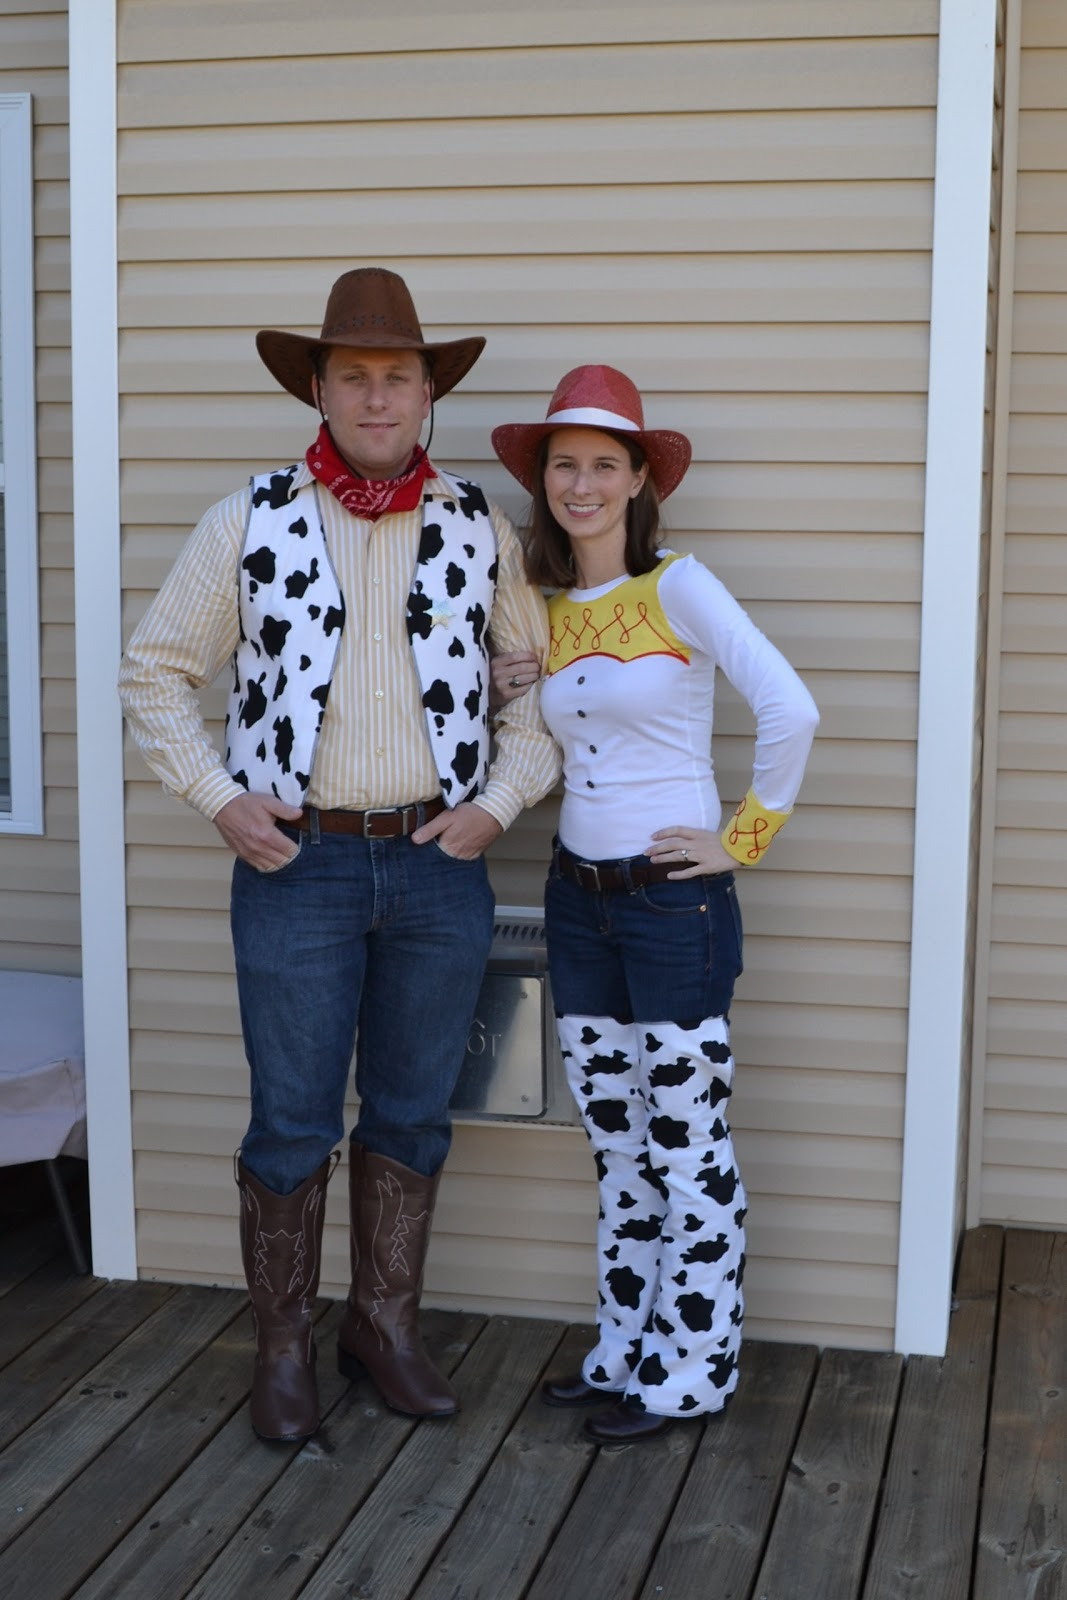 Jessie and Woody Costumes Homemade http://www.laforcebewithyou.com/2011_10_01_archive.html